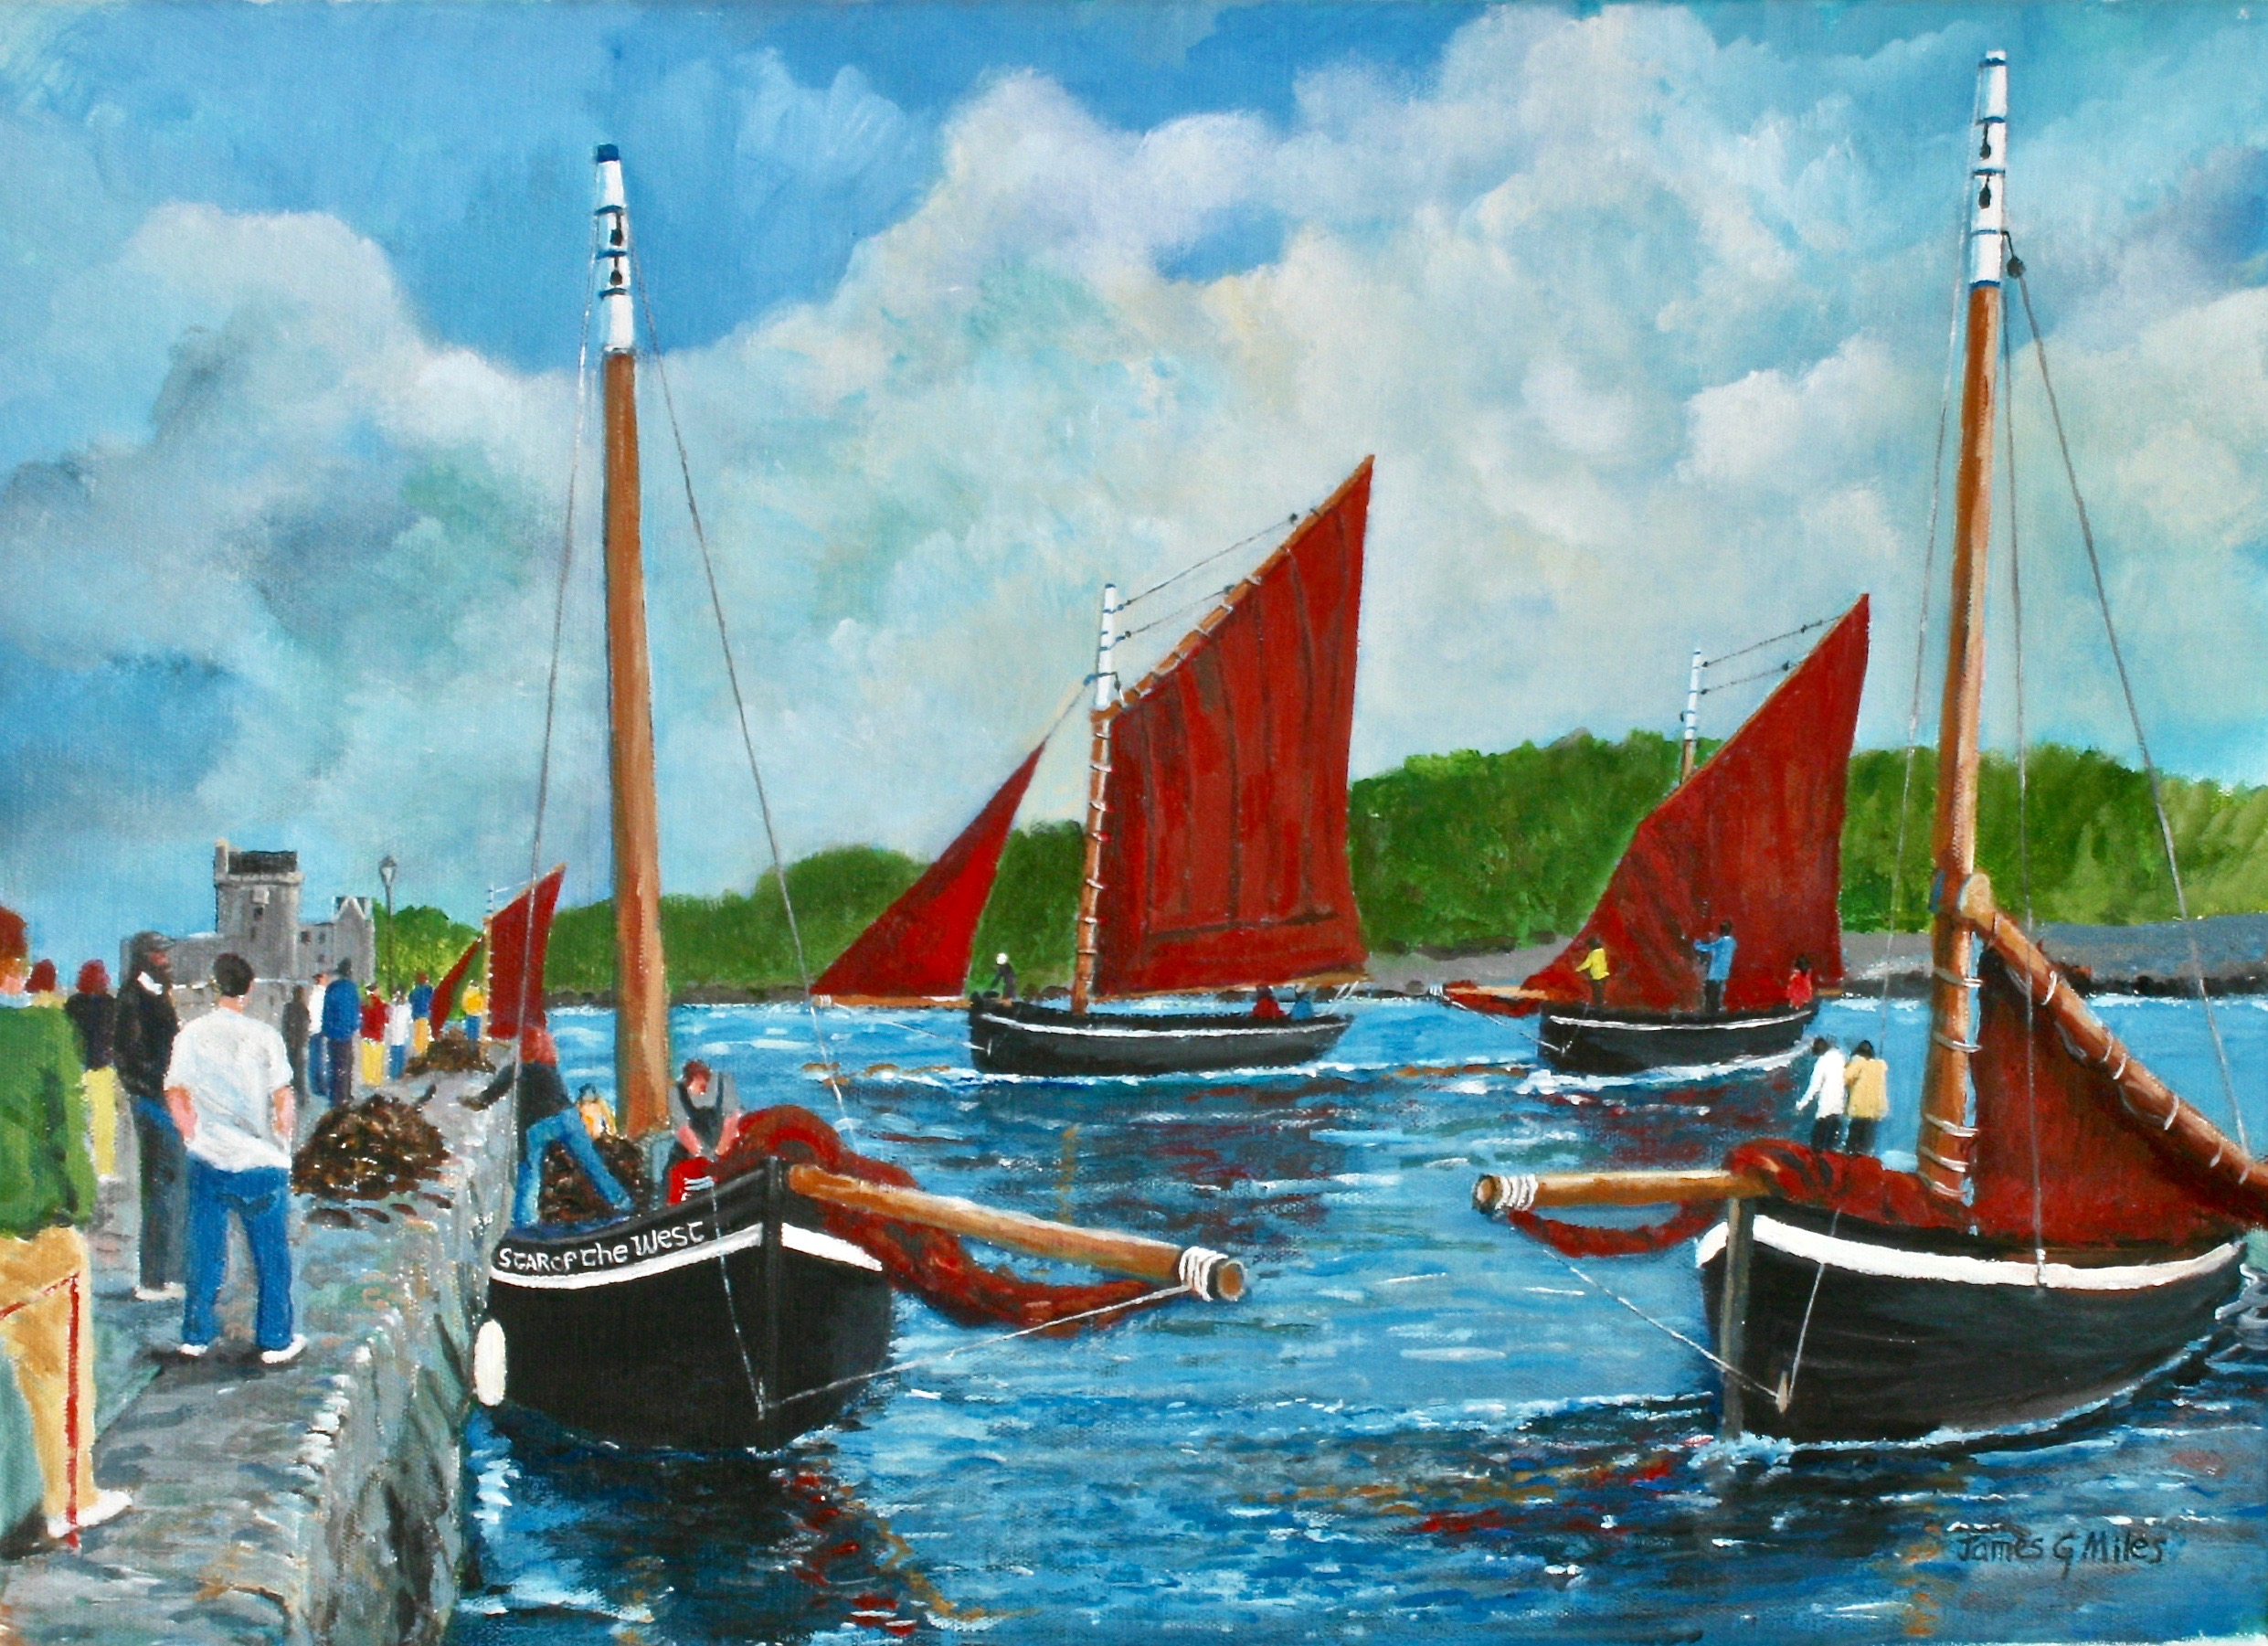 https://galwayhookers.com/works/the-turf-race-kinvara/